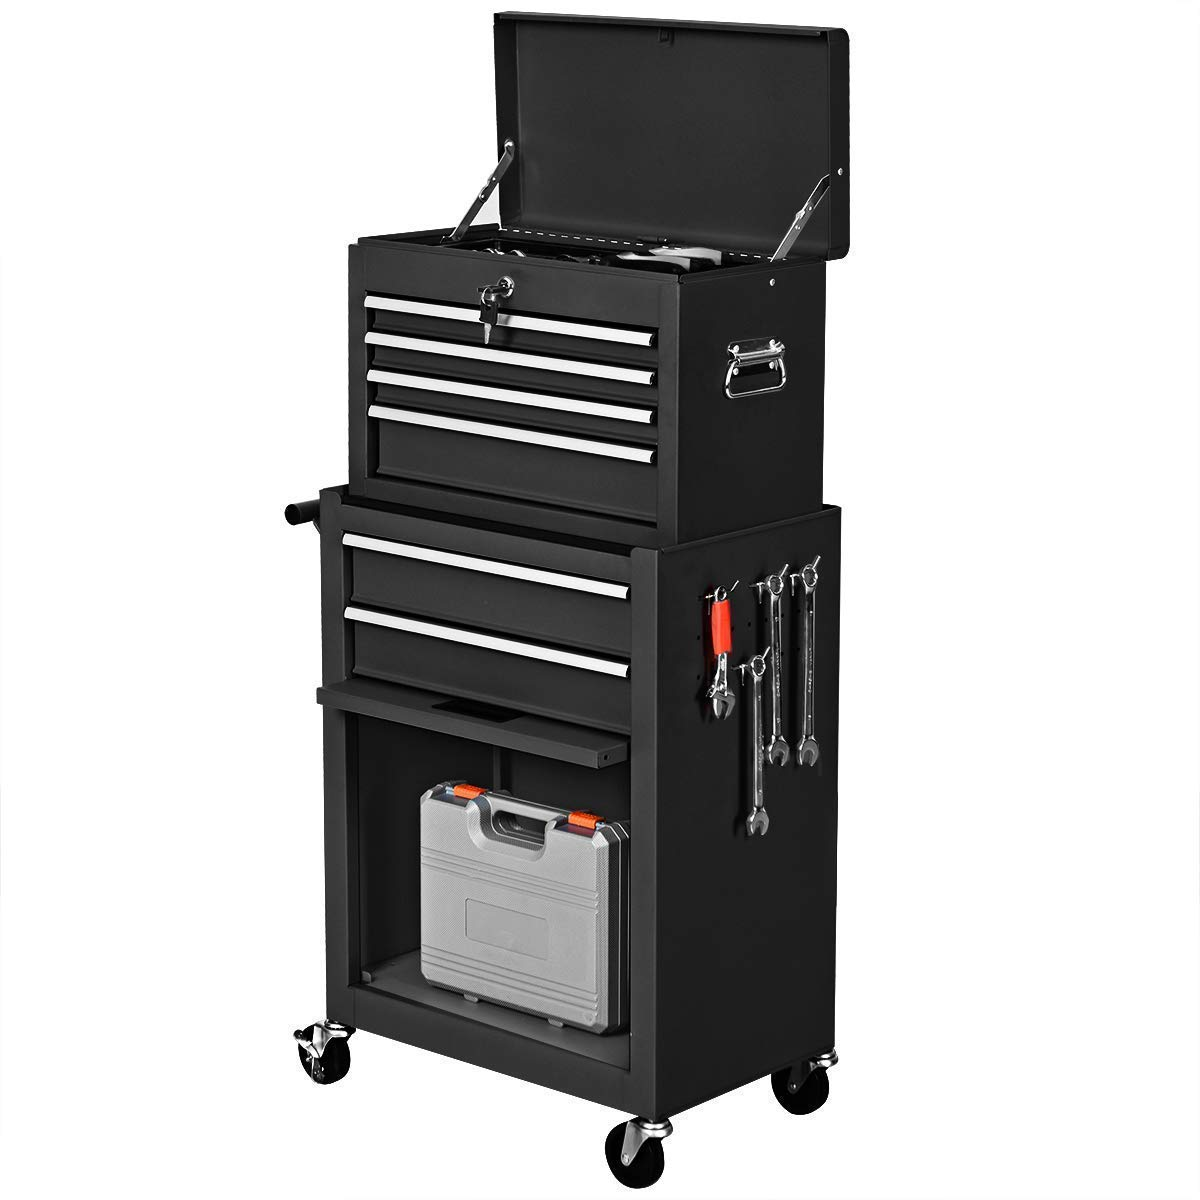 Goplus 6-Drawer Rolling Tool Chest Removable Tool Storage Cabinet with Sliding Drawers, Keyed Locking System Toolbox Organizer (Black) by Goplus (Image #8)